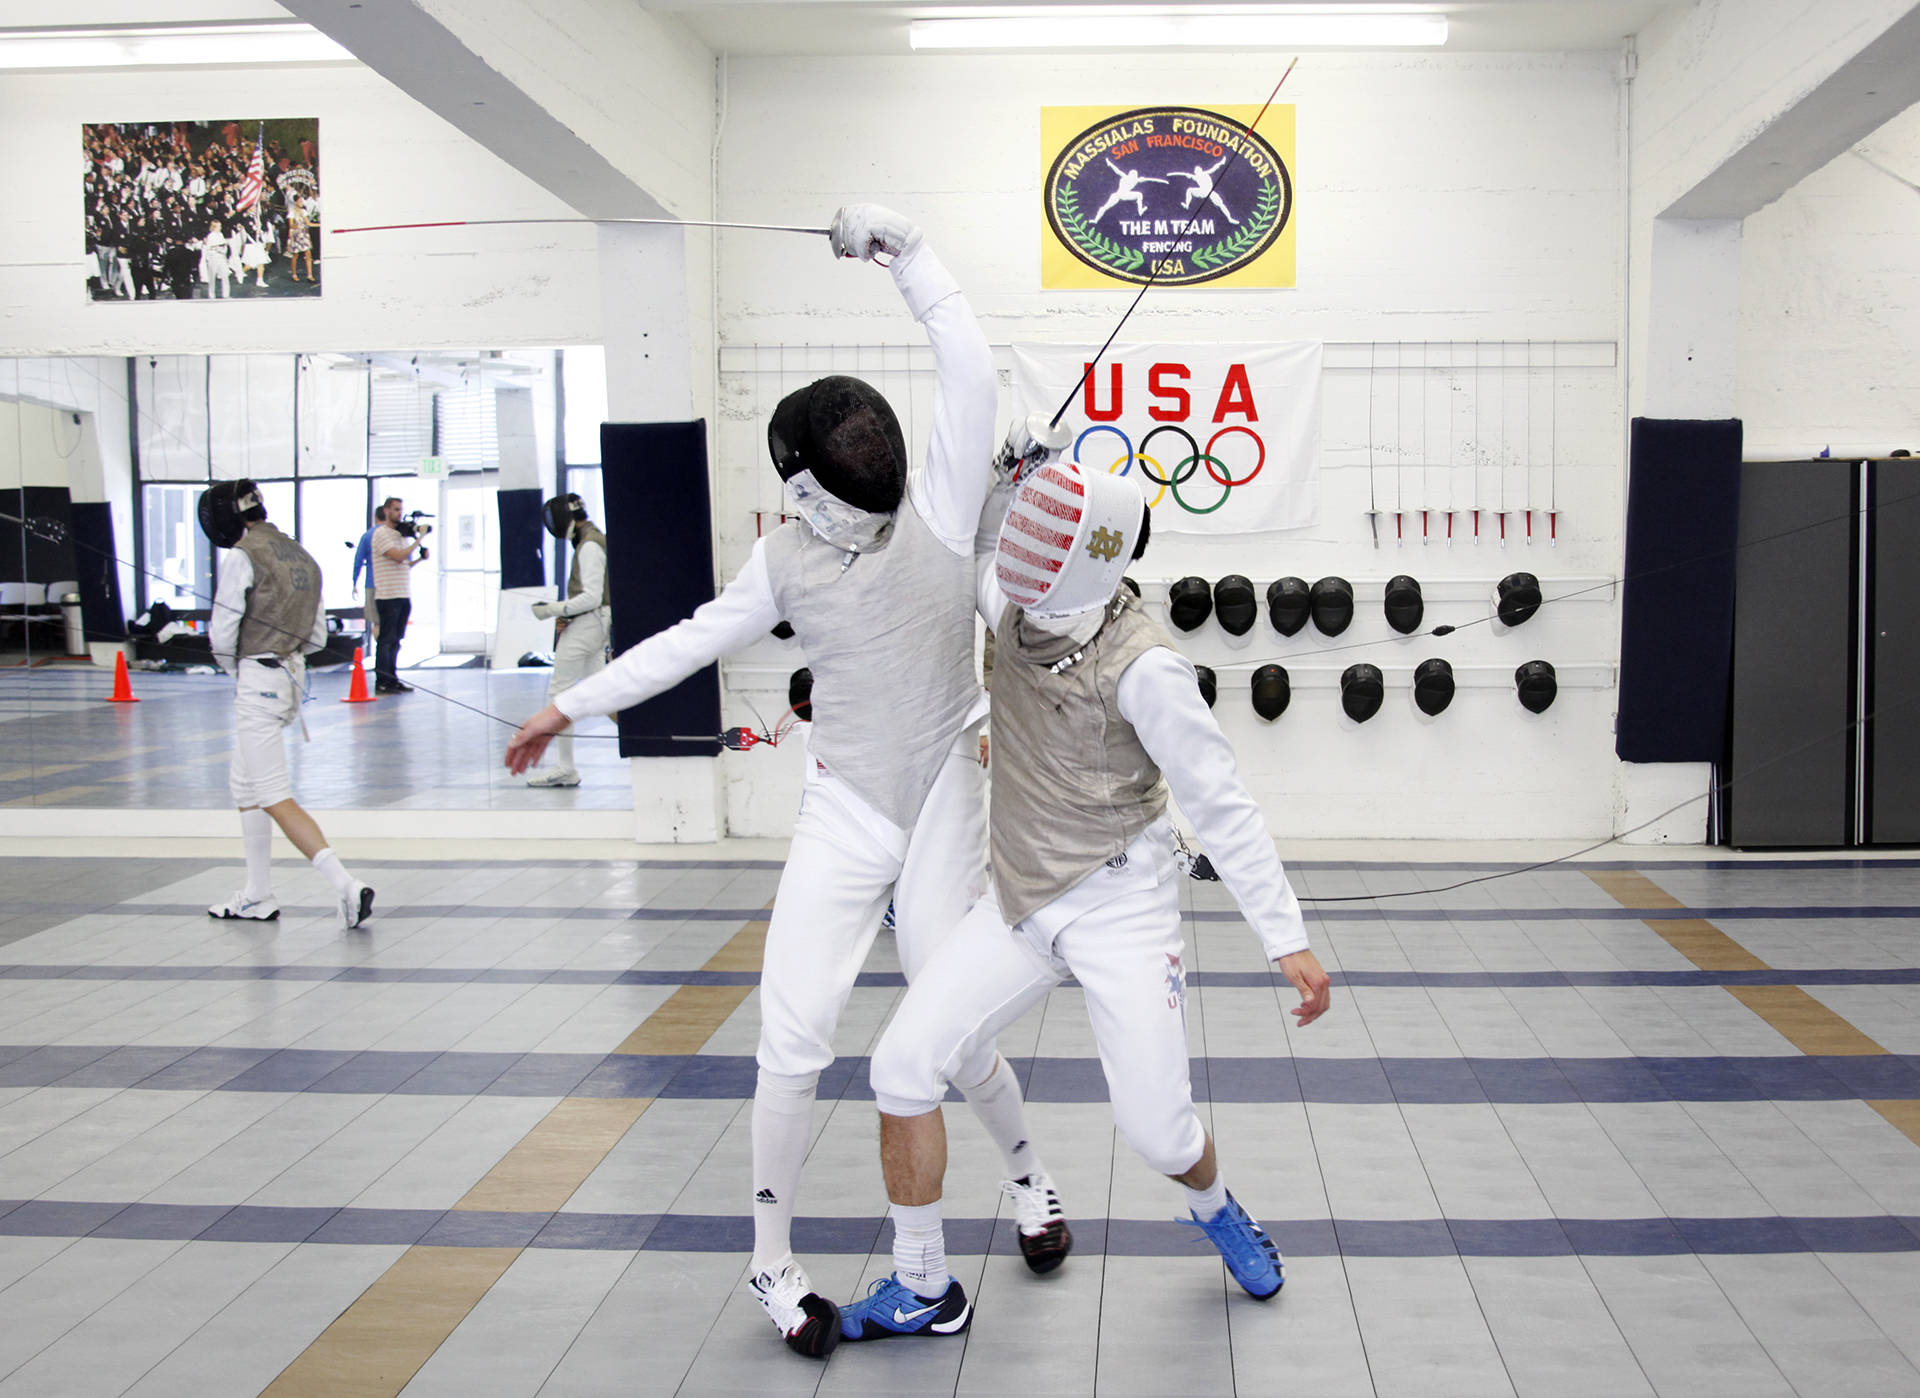 Race Imboden (left) and Gerek Meinhardt (right) collide during a practice. Both are heading to compete at the Olympics in Rio.  Brittany Hosea-Small/KQED